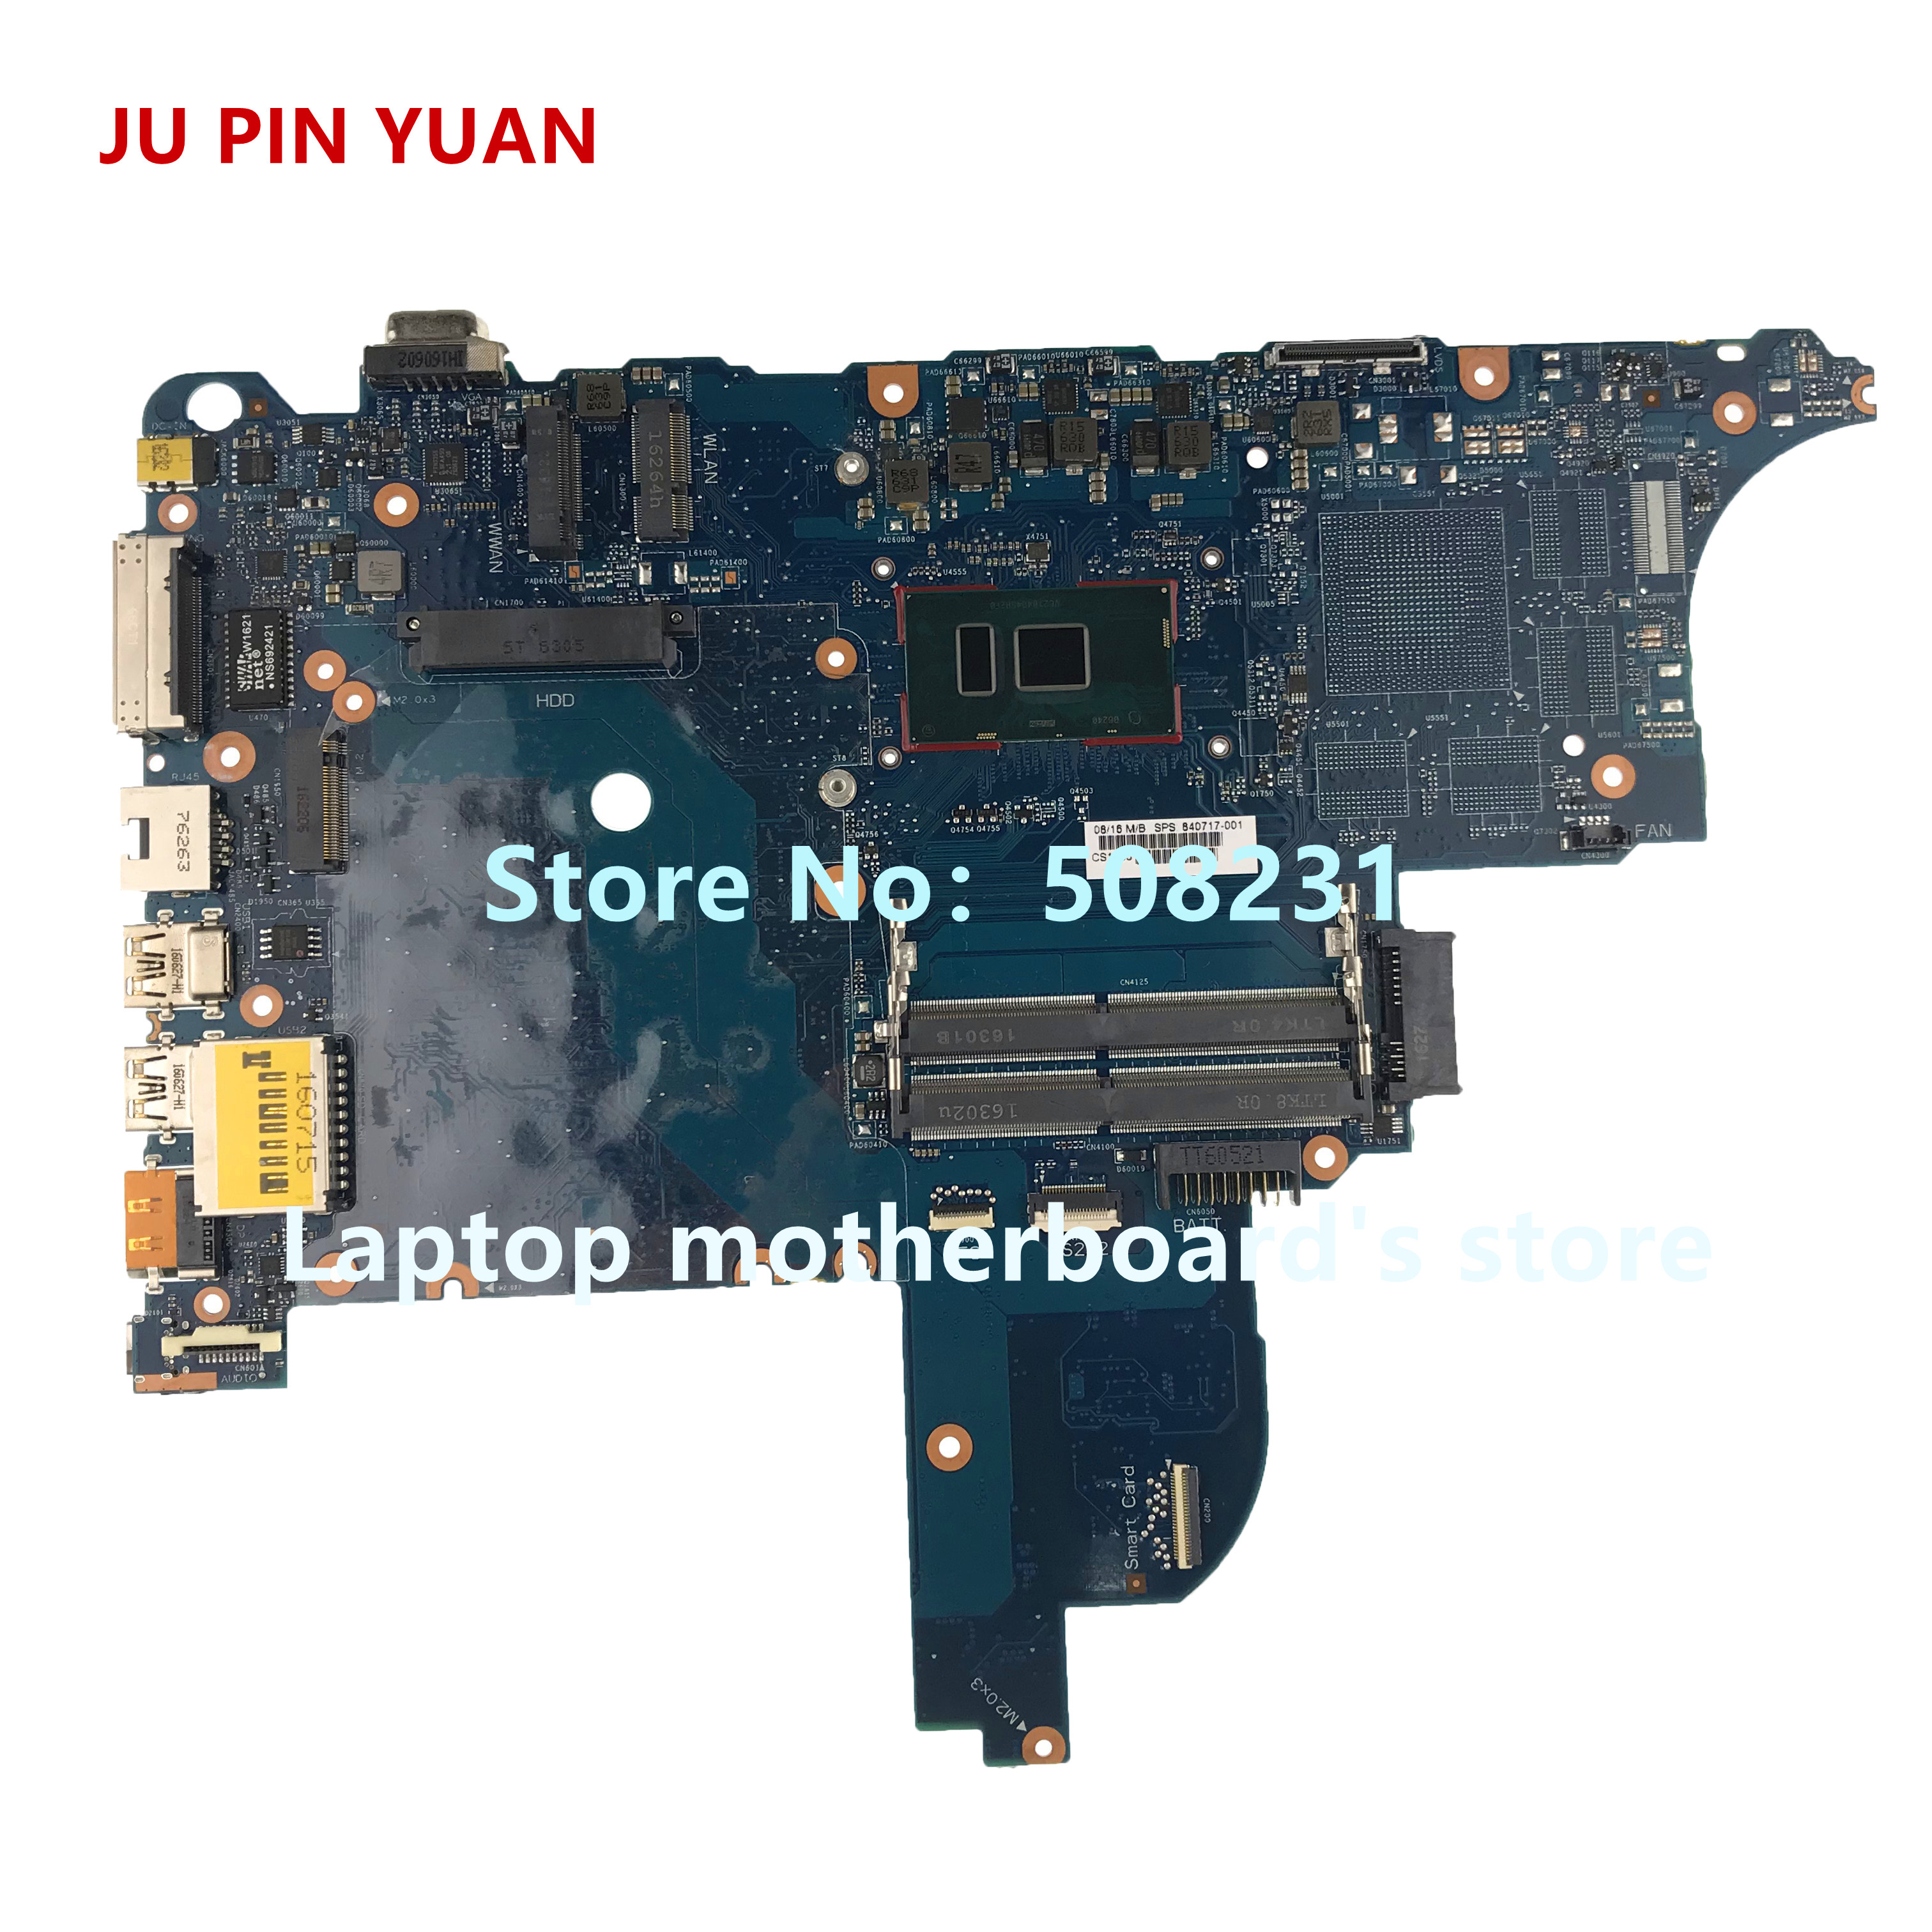 JU PIN YUAN 840717-601 840717-001 840717-501 Laptop motherboard for HP ProBook 640 <font><b>650</b></font> G2 Notebook PC <font><b>i5</b></font>-6300U fully Tested image